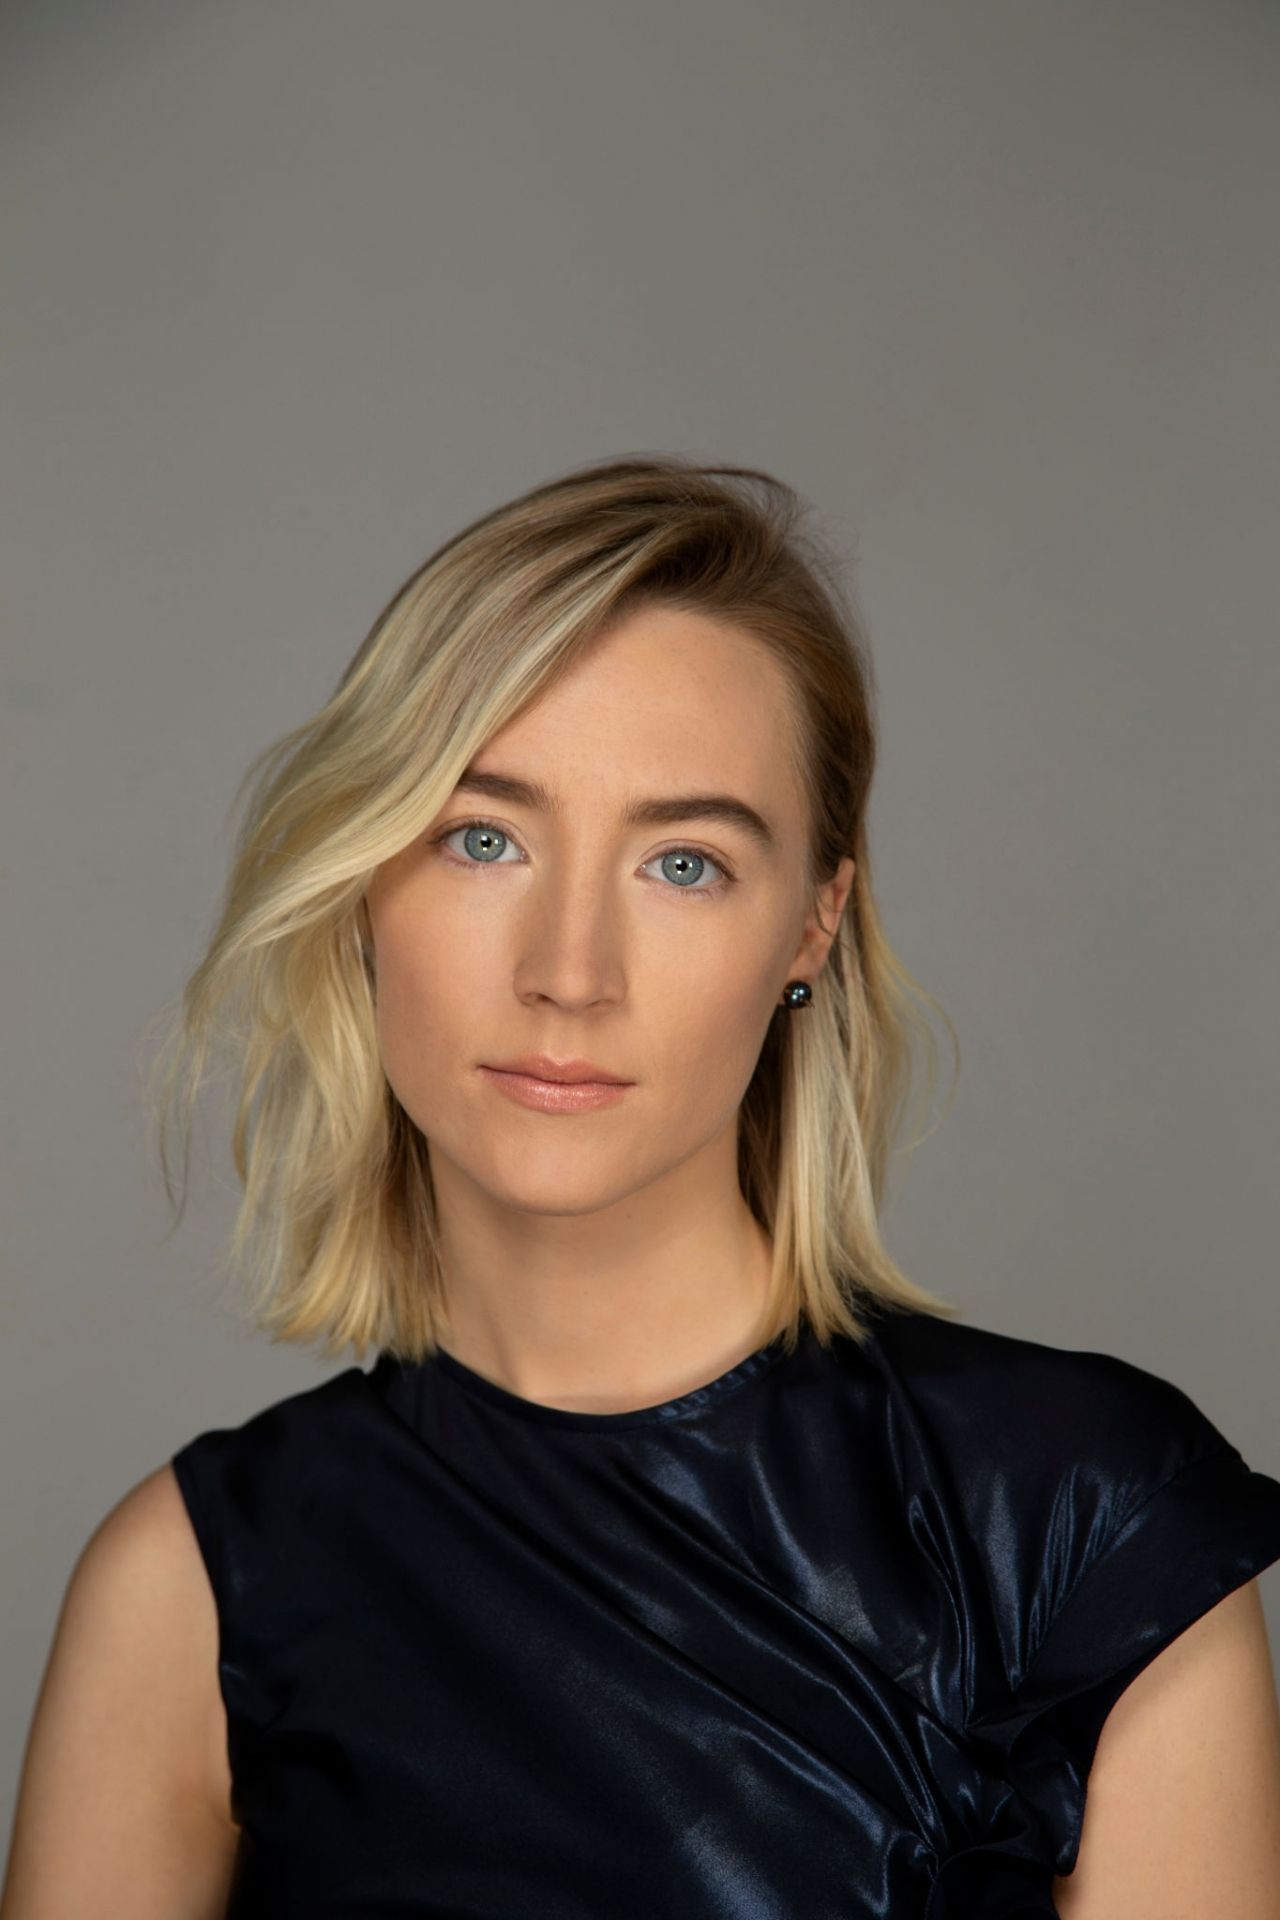 saoirse-ronan-photoshoot-for-la-times-actresses-roundtable-december-2018-2.jpg